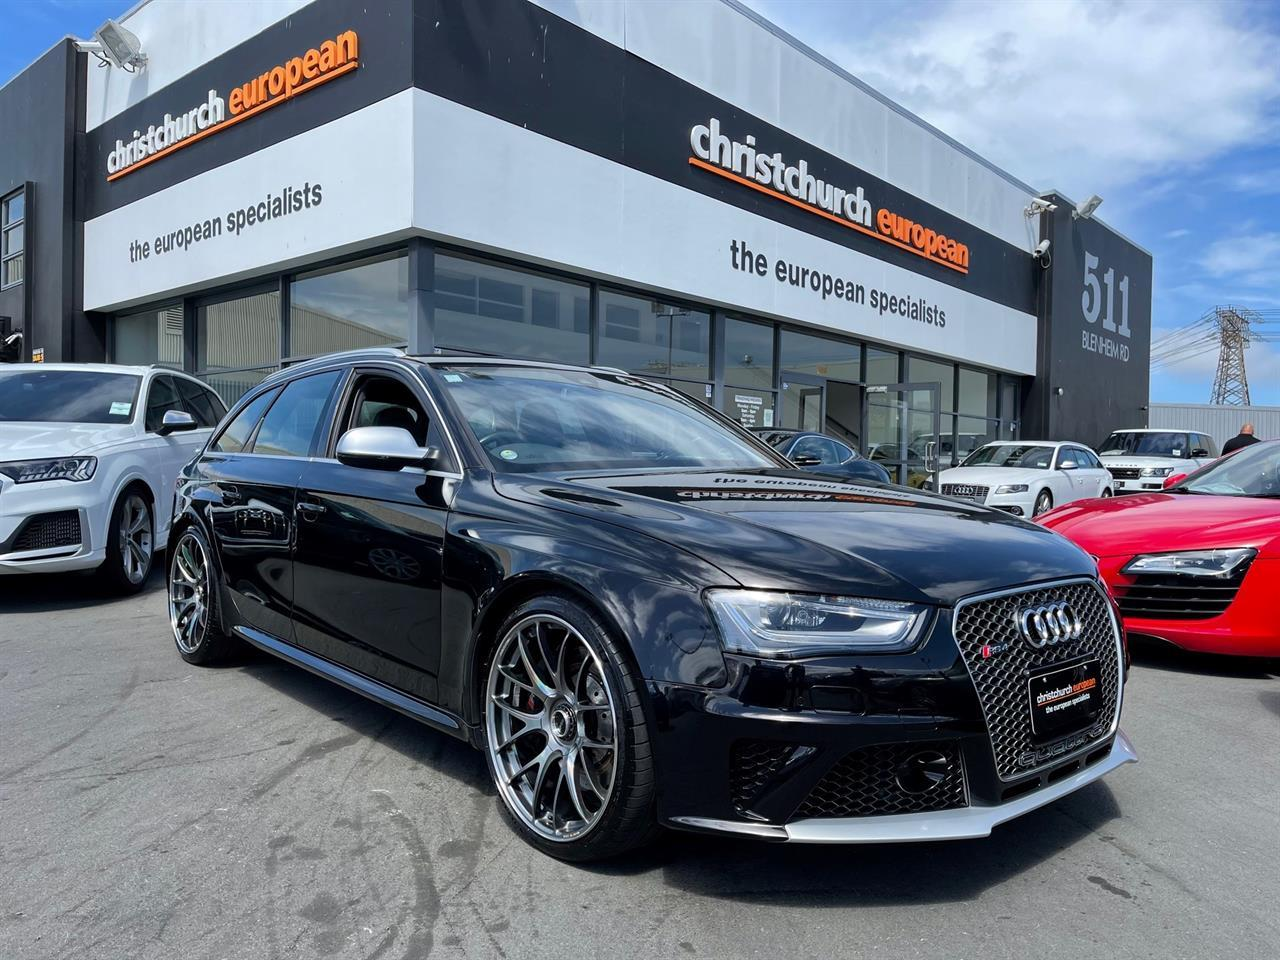 image-0, 2013 Audi RS4 4.2 V8 FSI Quattro Black Pack Wagon at Christchurch